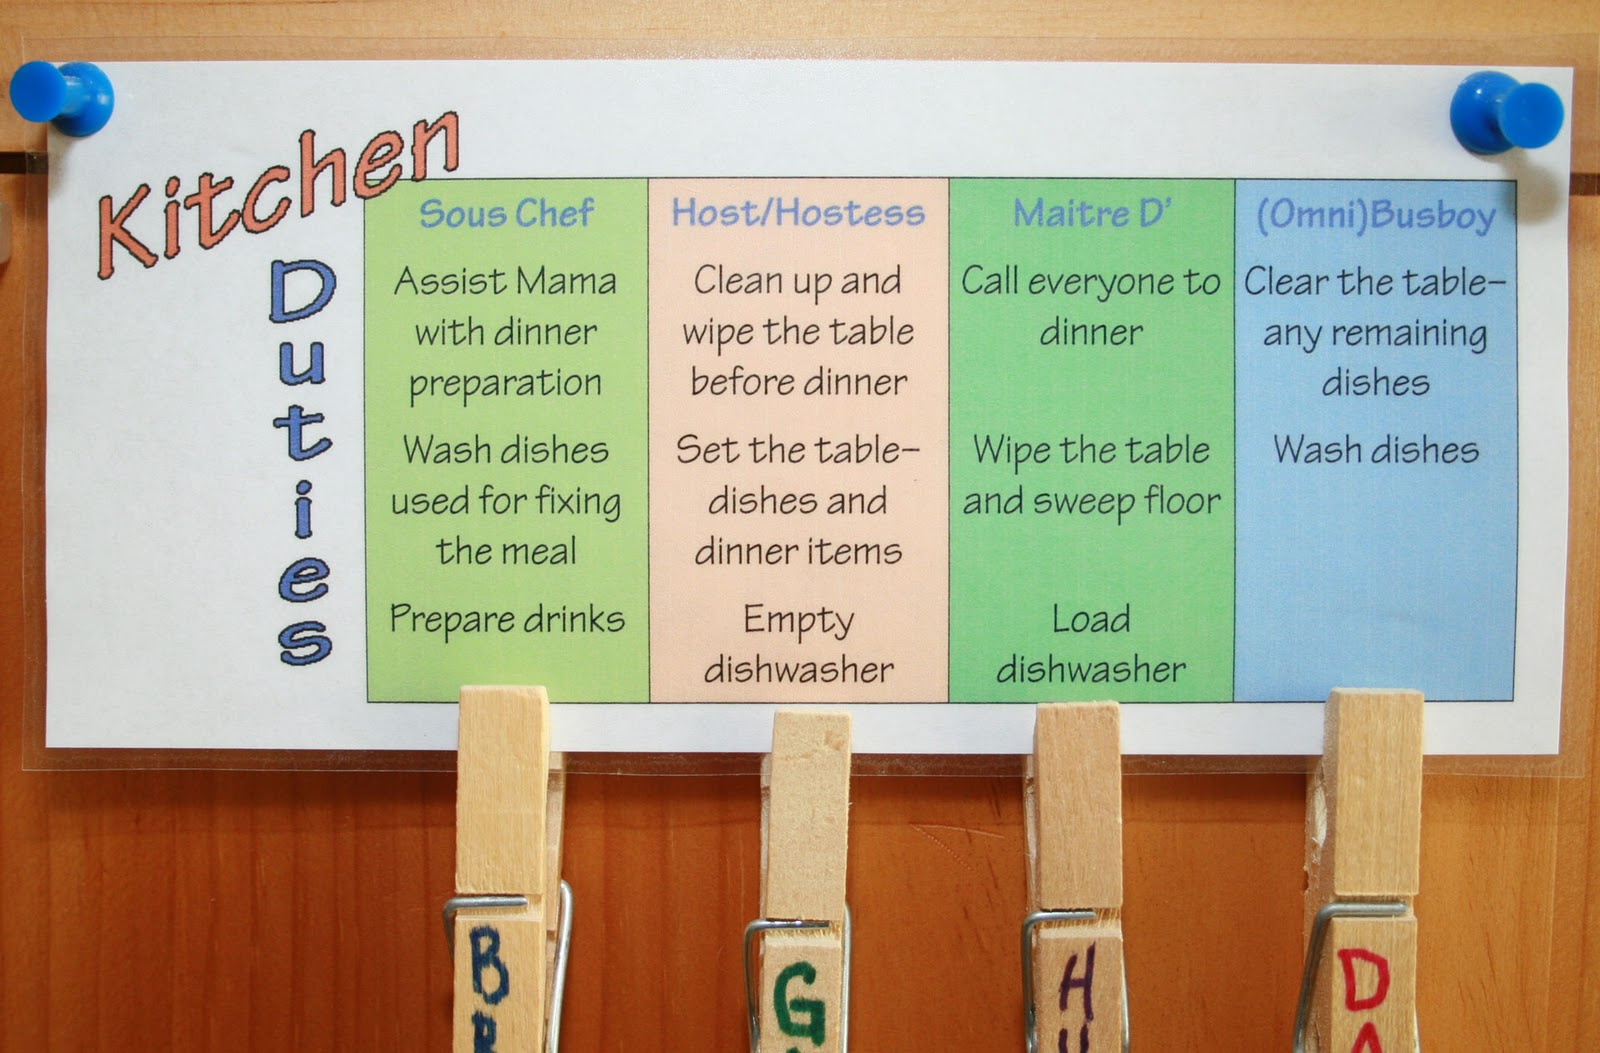 What are the duties of the kitchen worker